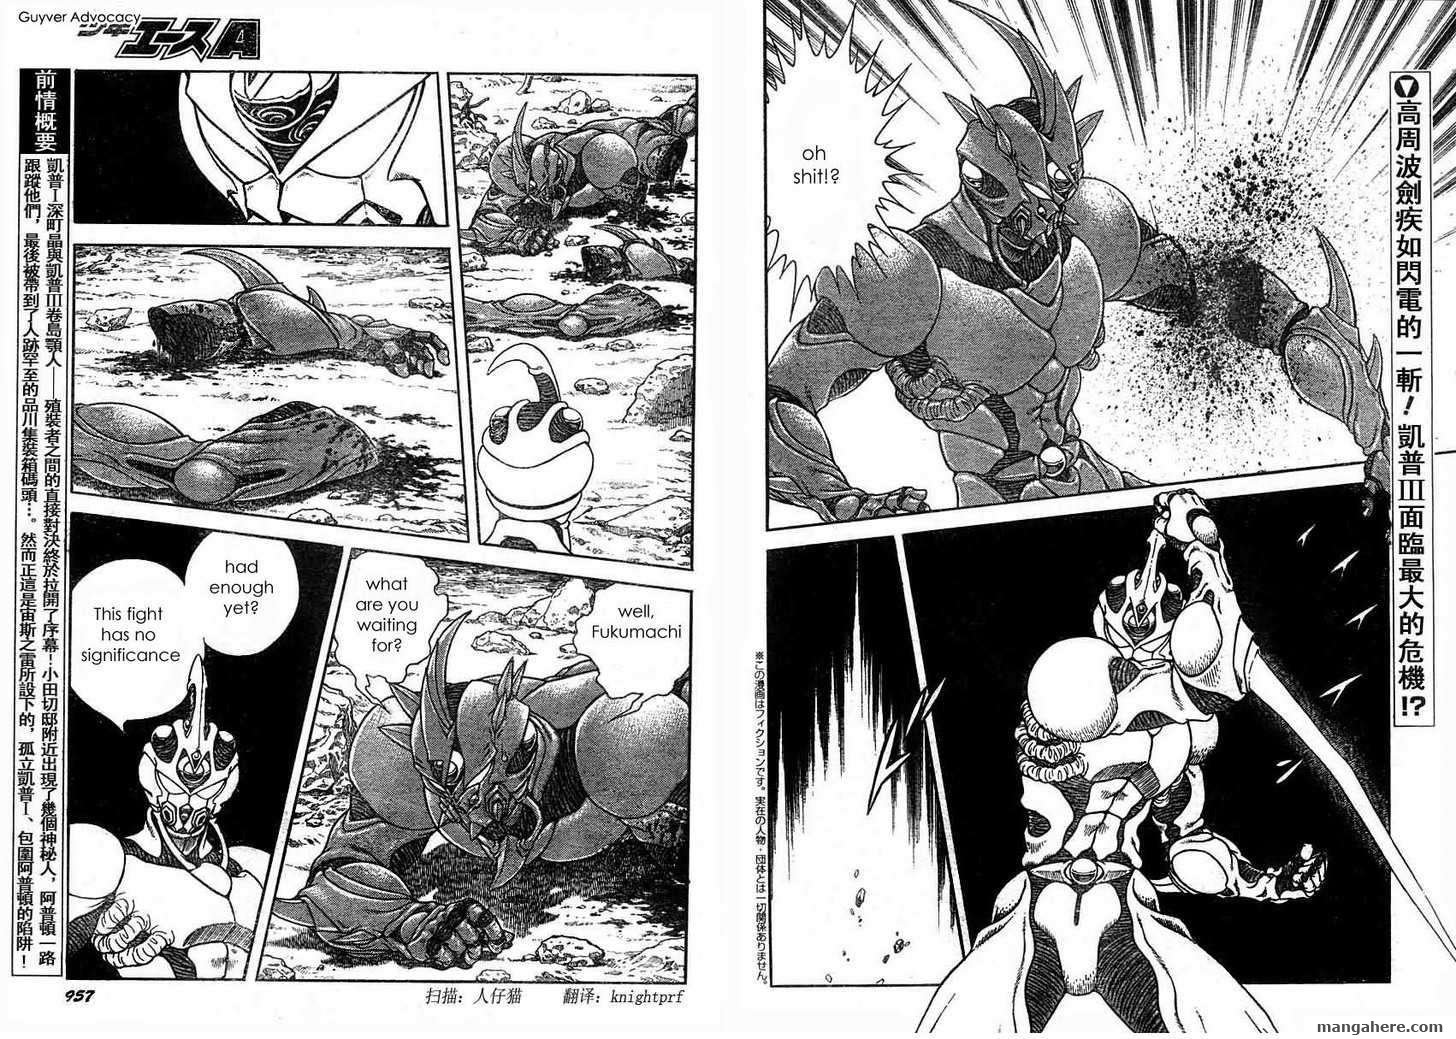 Guyver 180 Page 2